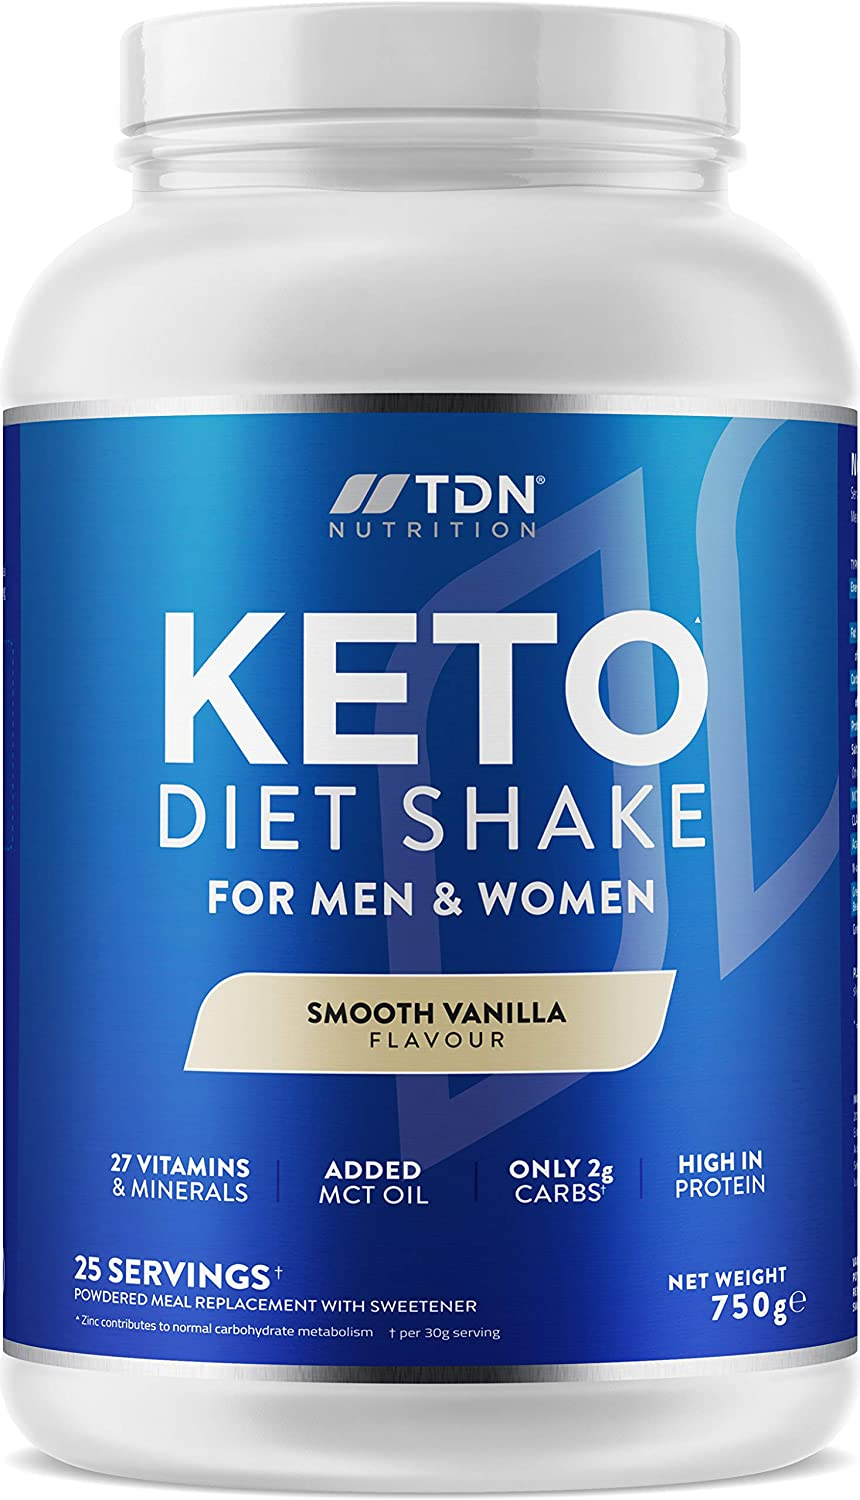 mct plus keto diet